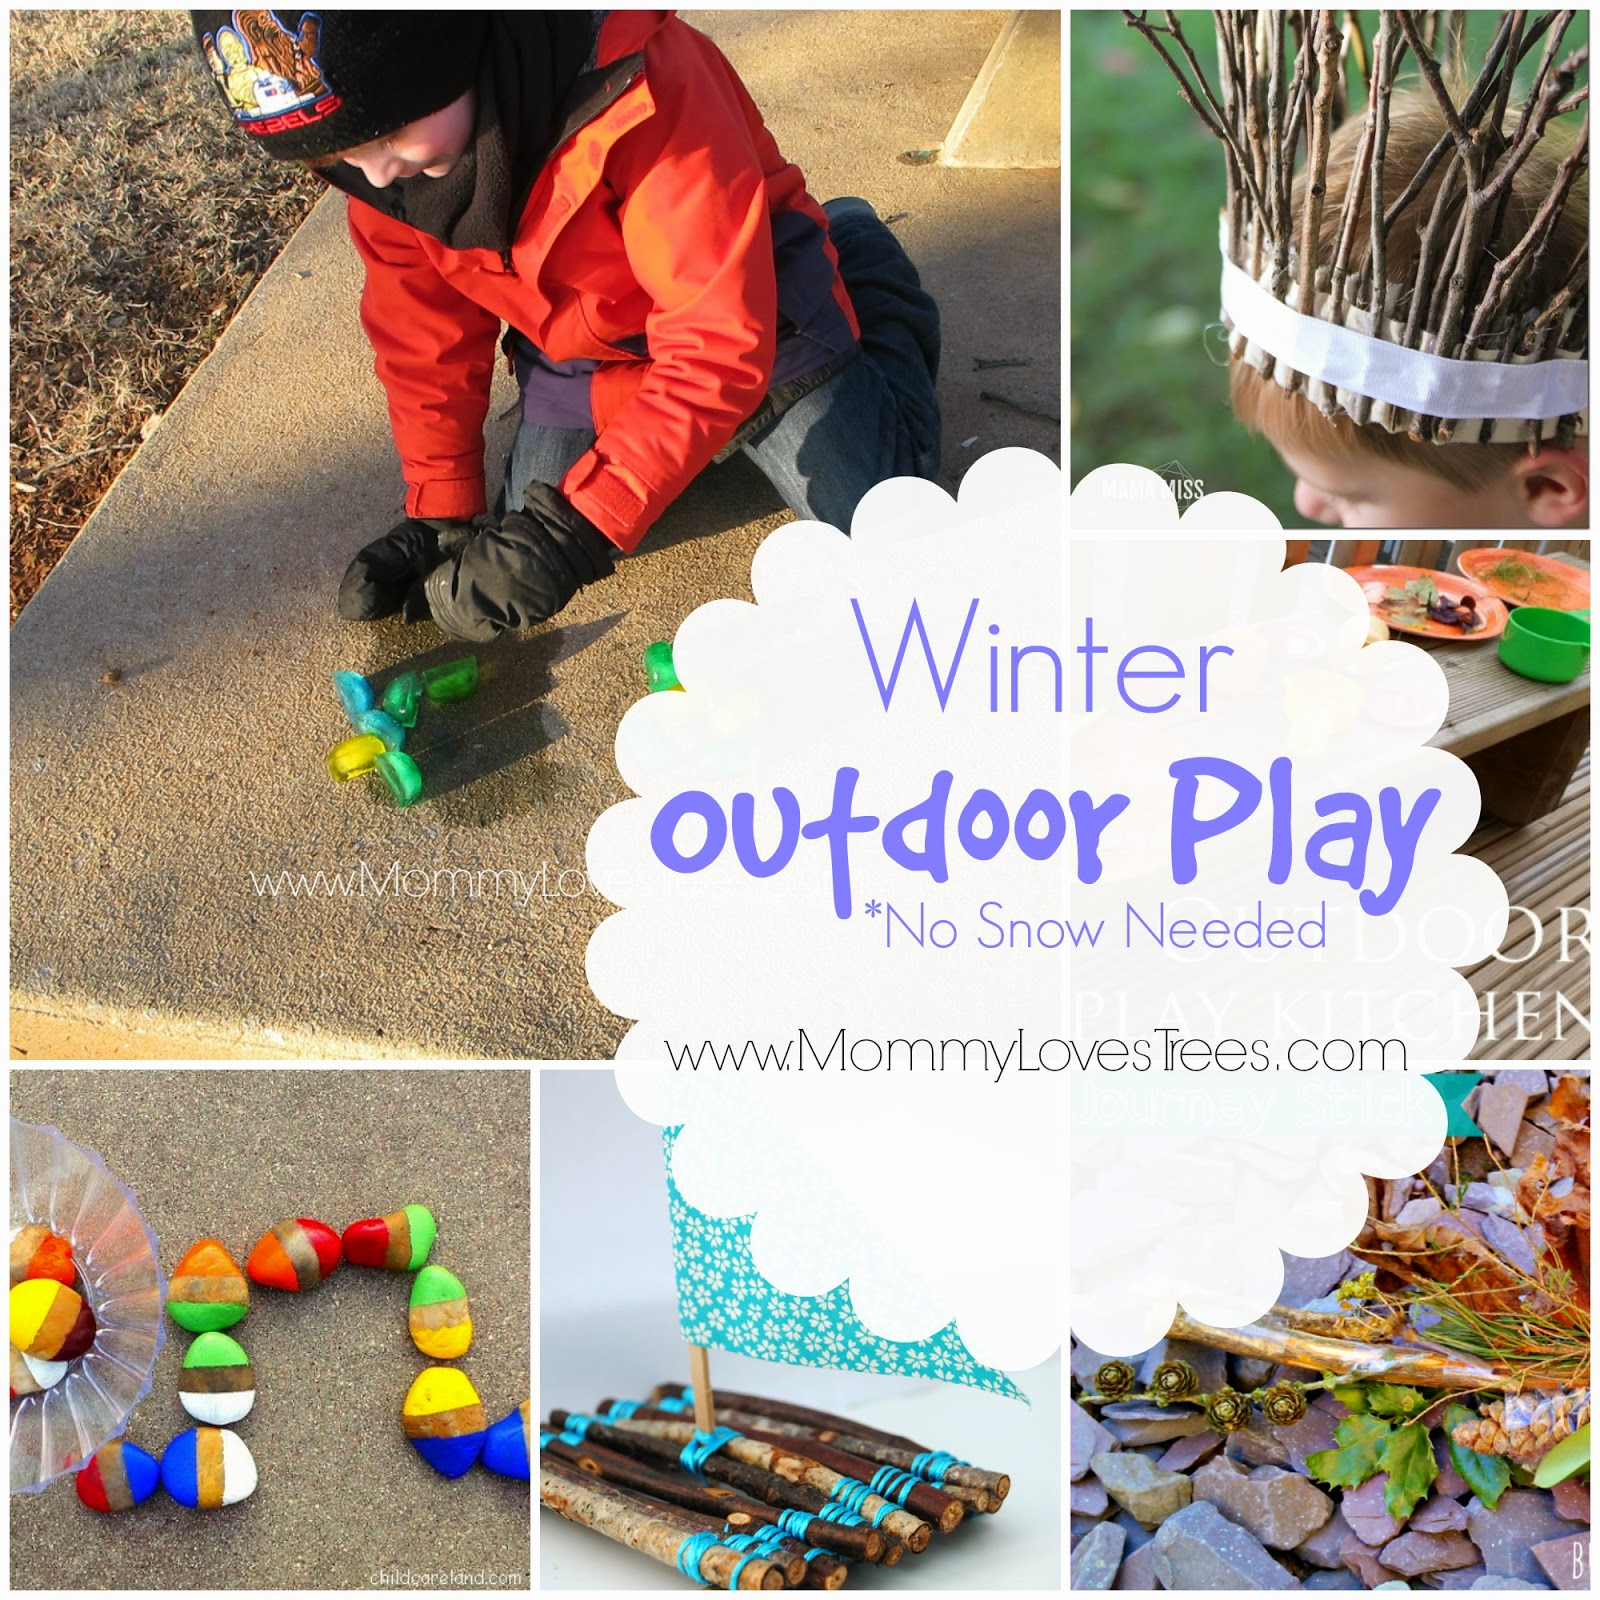 10 Creative Ideas for Outdoor Play in the Winter.